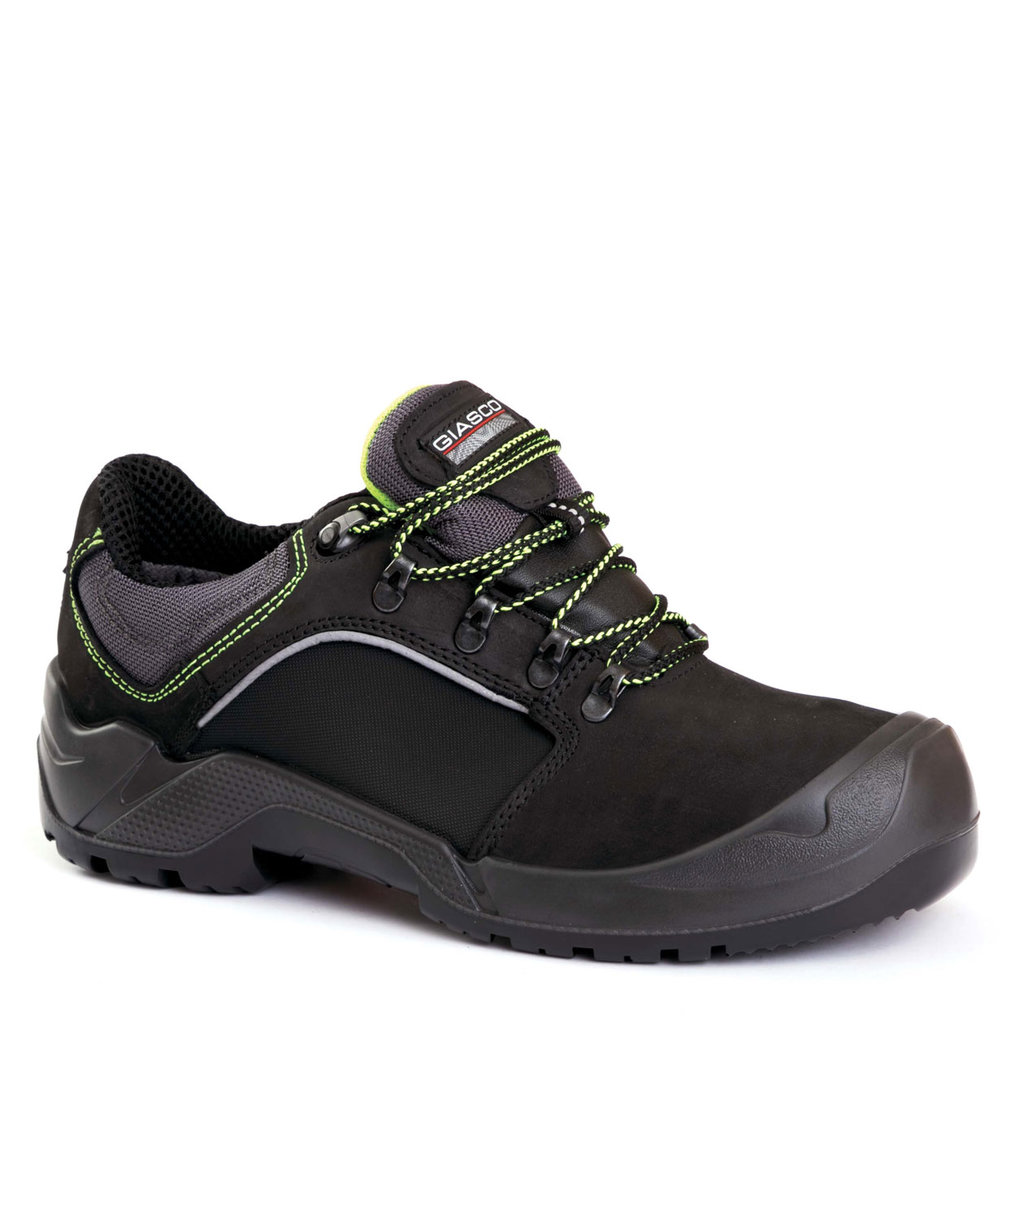 Giasco Essen safety shoes S3, Black